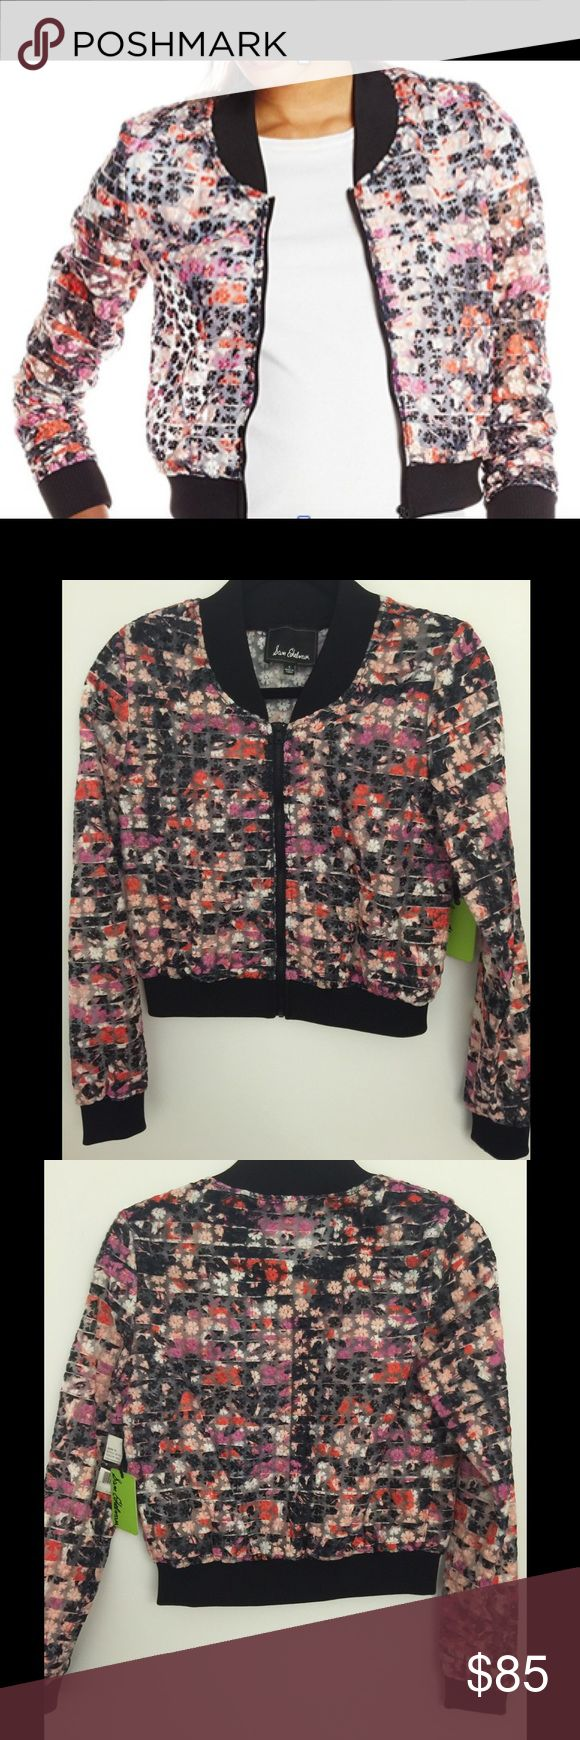 NWT Sam Edelman Embroidered Organza Jacket - S NWT Sam Edelman Women's Embroidered Organza Baseball - S. Baseball-inspired jacket in floral print featuring zip-up front and cropped silhoue and textured flowers coming off jacket. Perfect with white tee and black jeans. Retail: $149 / Current Retail: $111 / Merc - $75   100% Nylon Imported Machine Wash Baseball-inspired jacket in floral print featuring zip-up front and cropped silhouette Solid-tone ribbed cuffs, hem, and collar Sam Edelman…